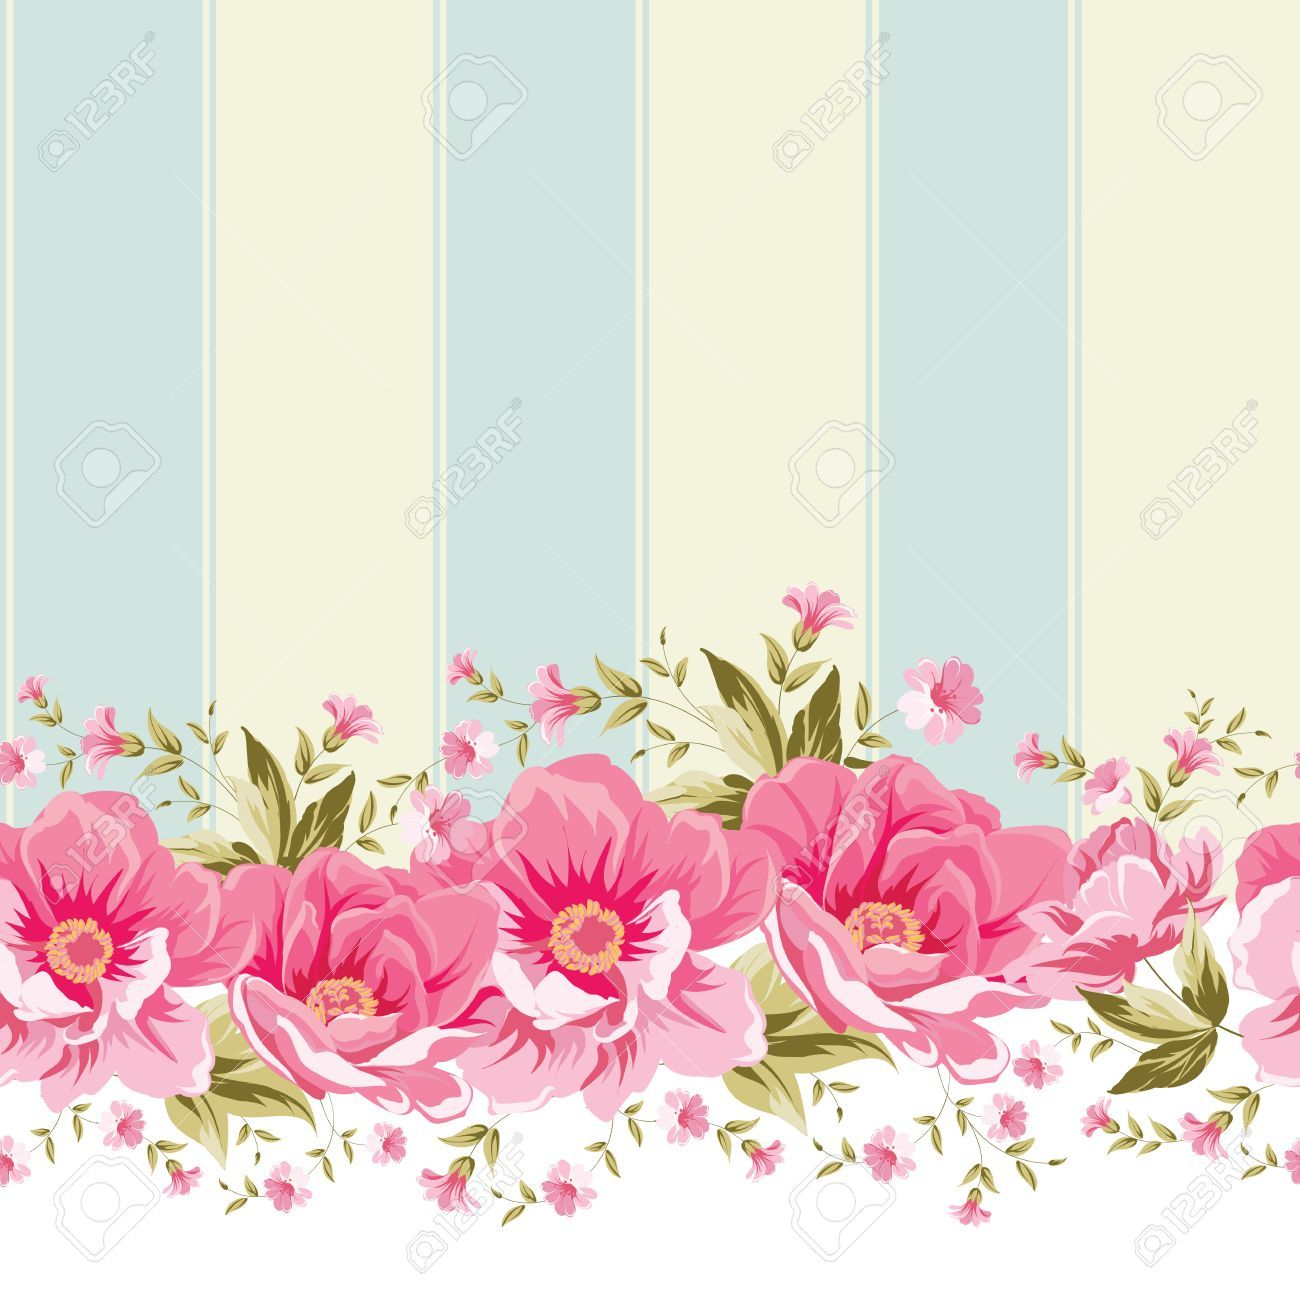 Pink Vintage Border Templates Ornate Pink Flower Bor...